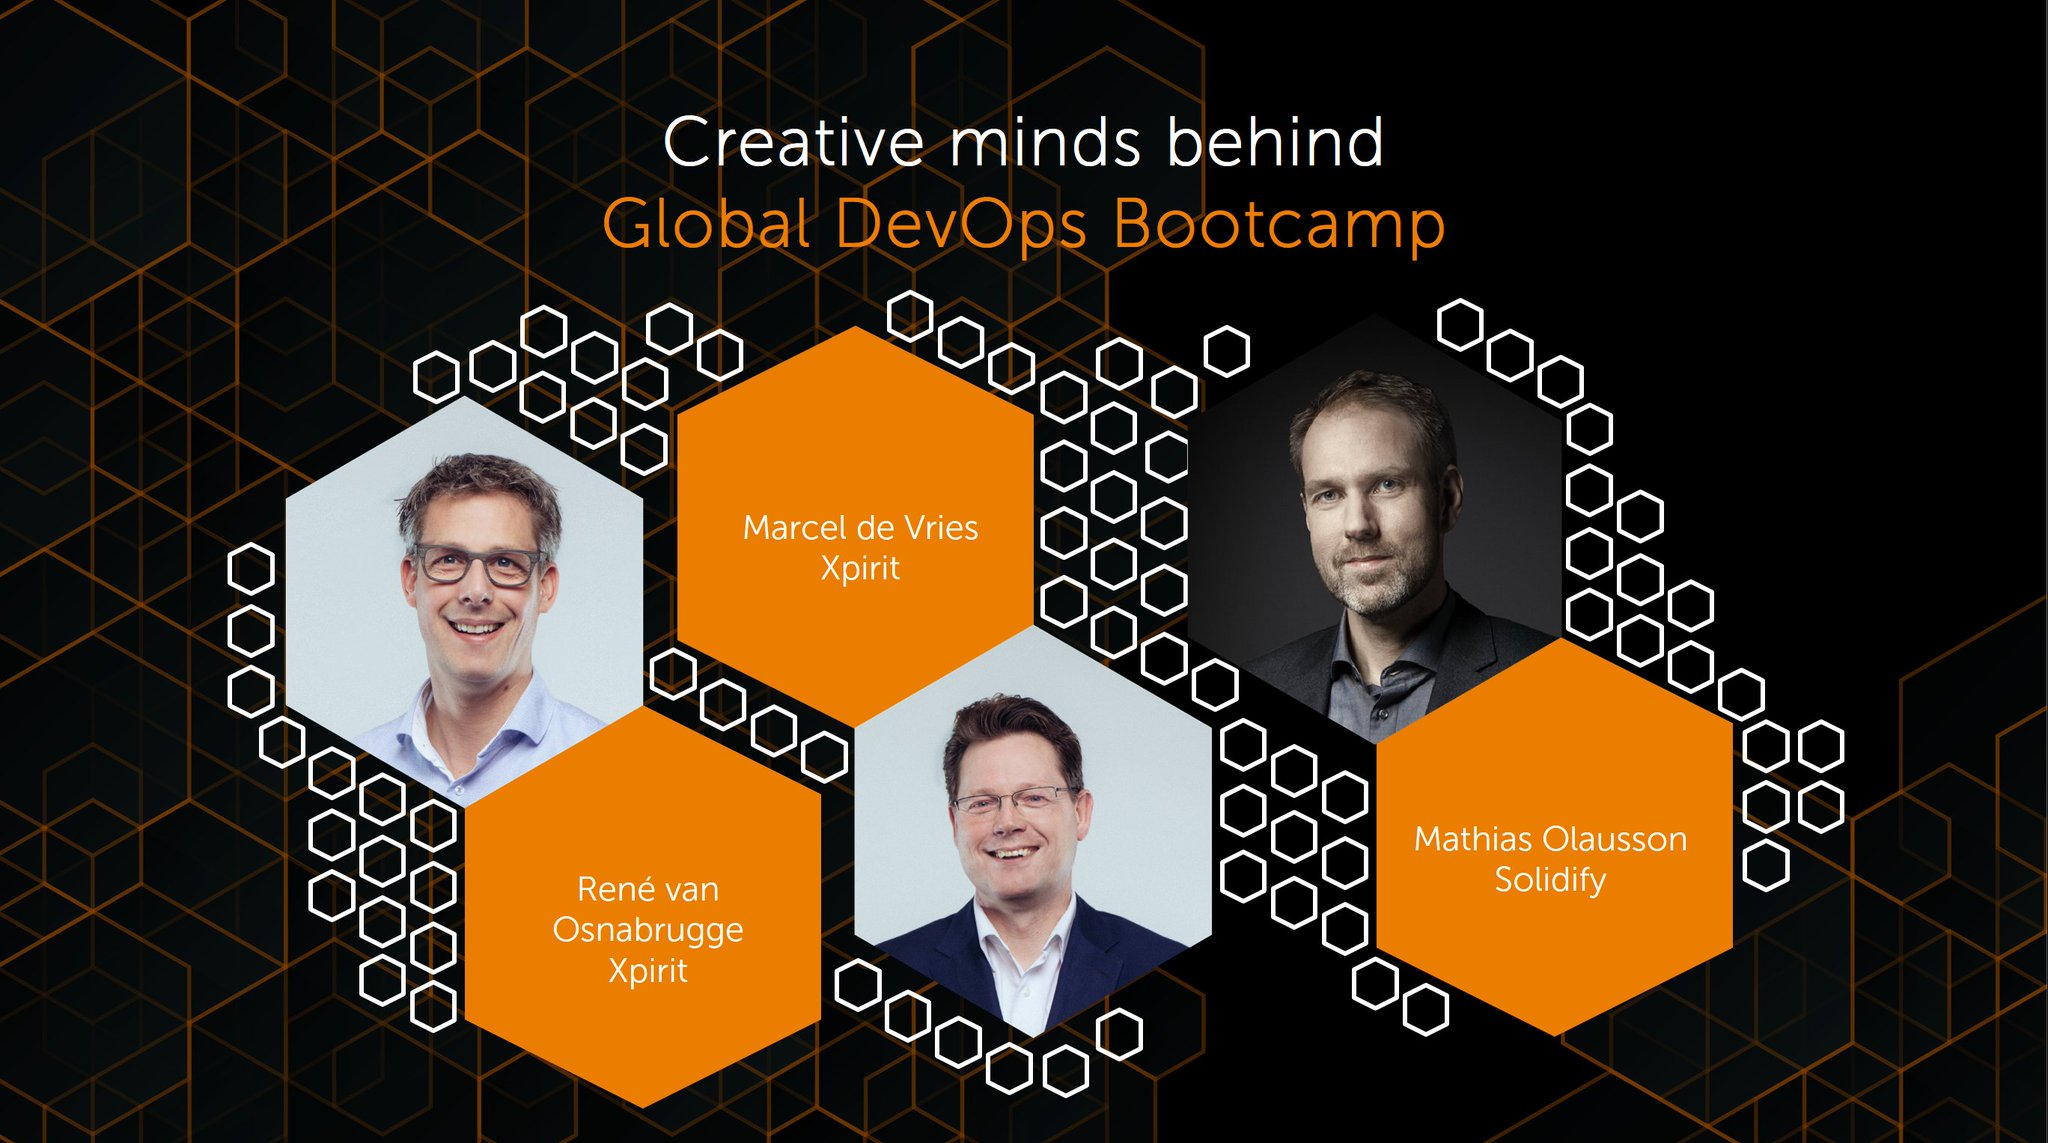 Still very energetic after the Global DevOps Bootcamp yesterday! Thanks again @renevo @marcelv @molausson for this magnificant idea! #GDBC https://t.co/Dh70AYC4Ee